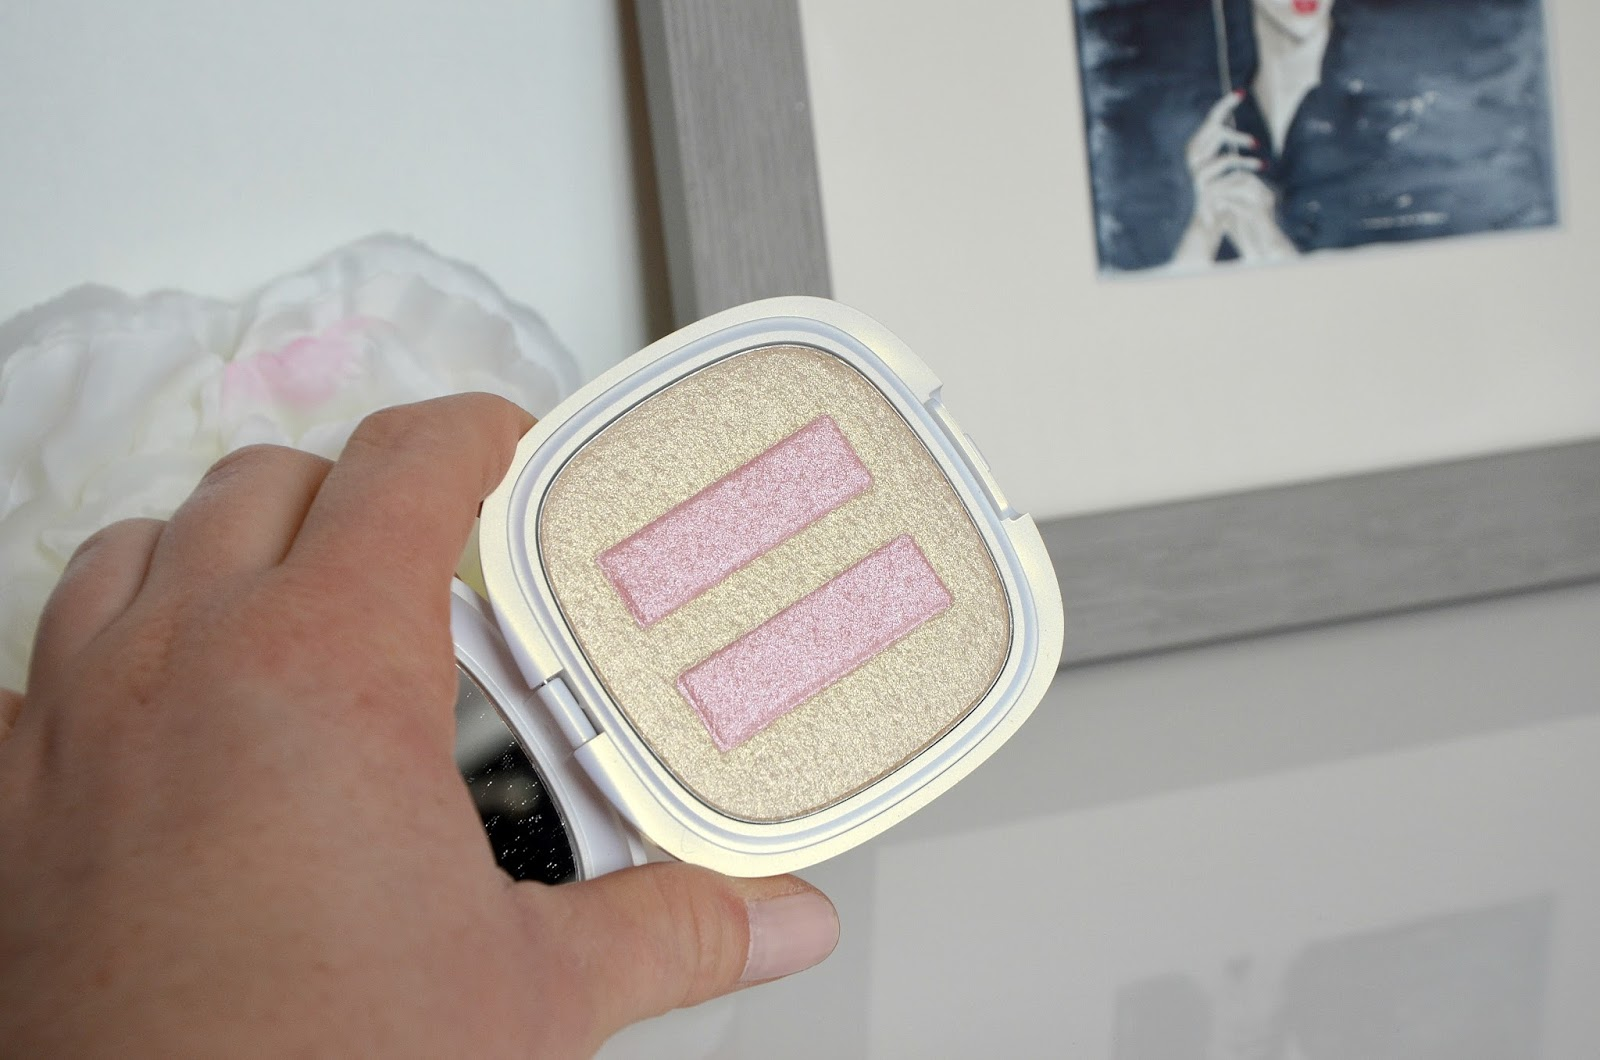 Enlumineur  natural color 02 iridescent champagne collection spring 2.0 kiko